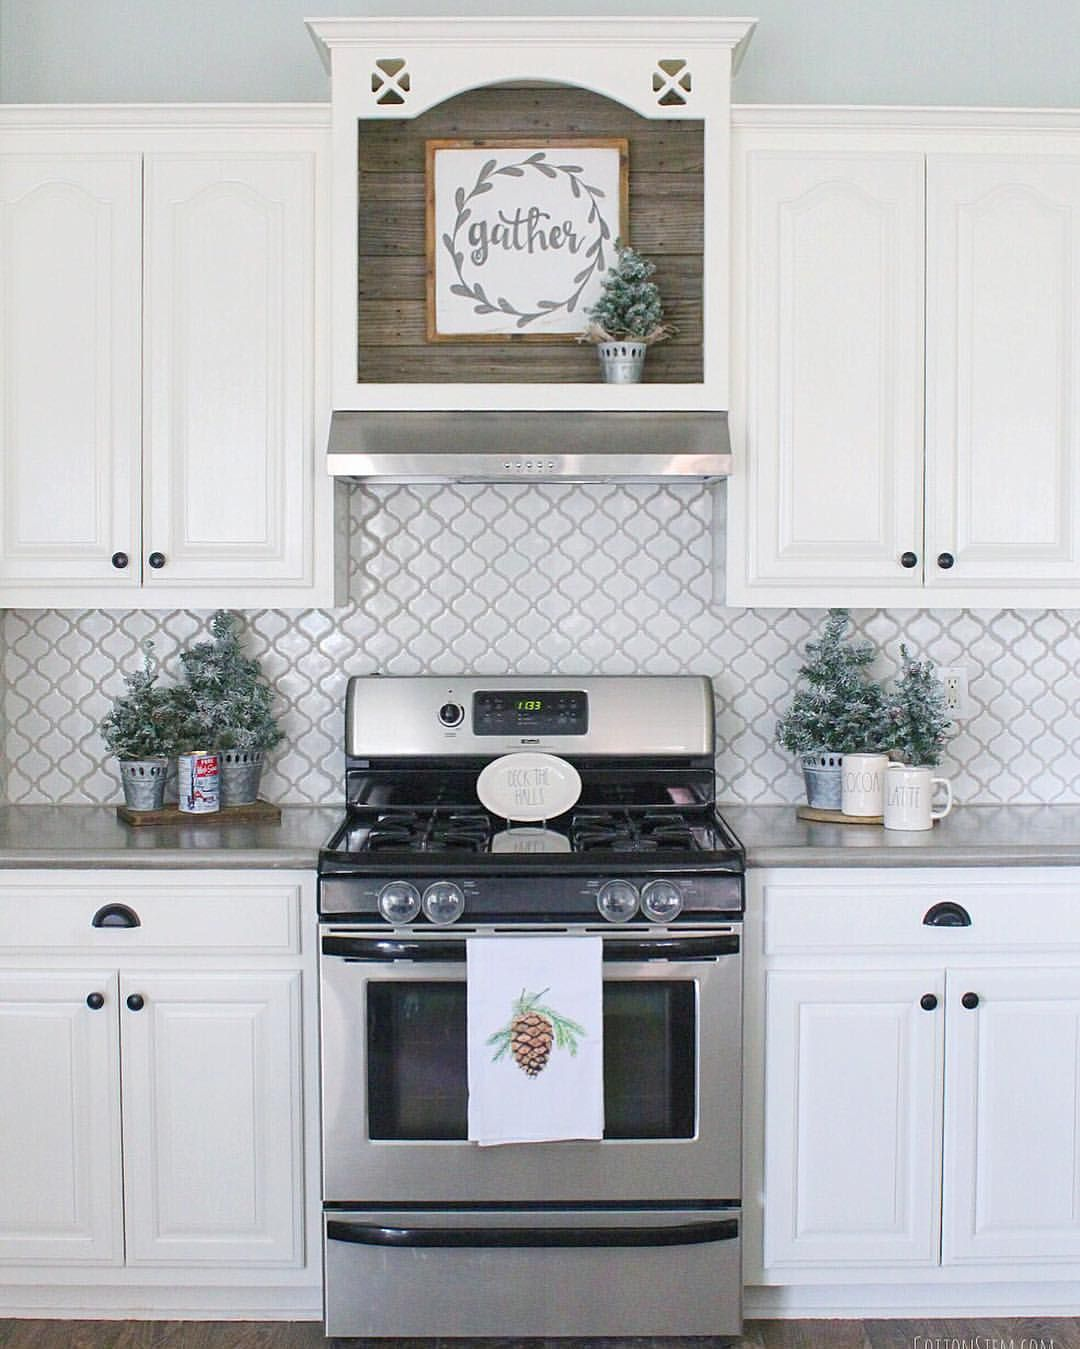 I Love The Open Cabinet Above The Stove Great For Displaying Items Or Signs New Kitchen Stove Decor Kitchen Remodel